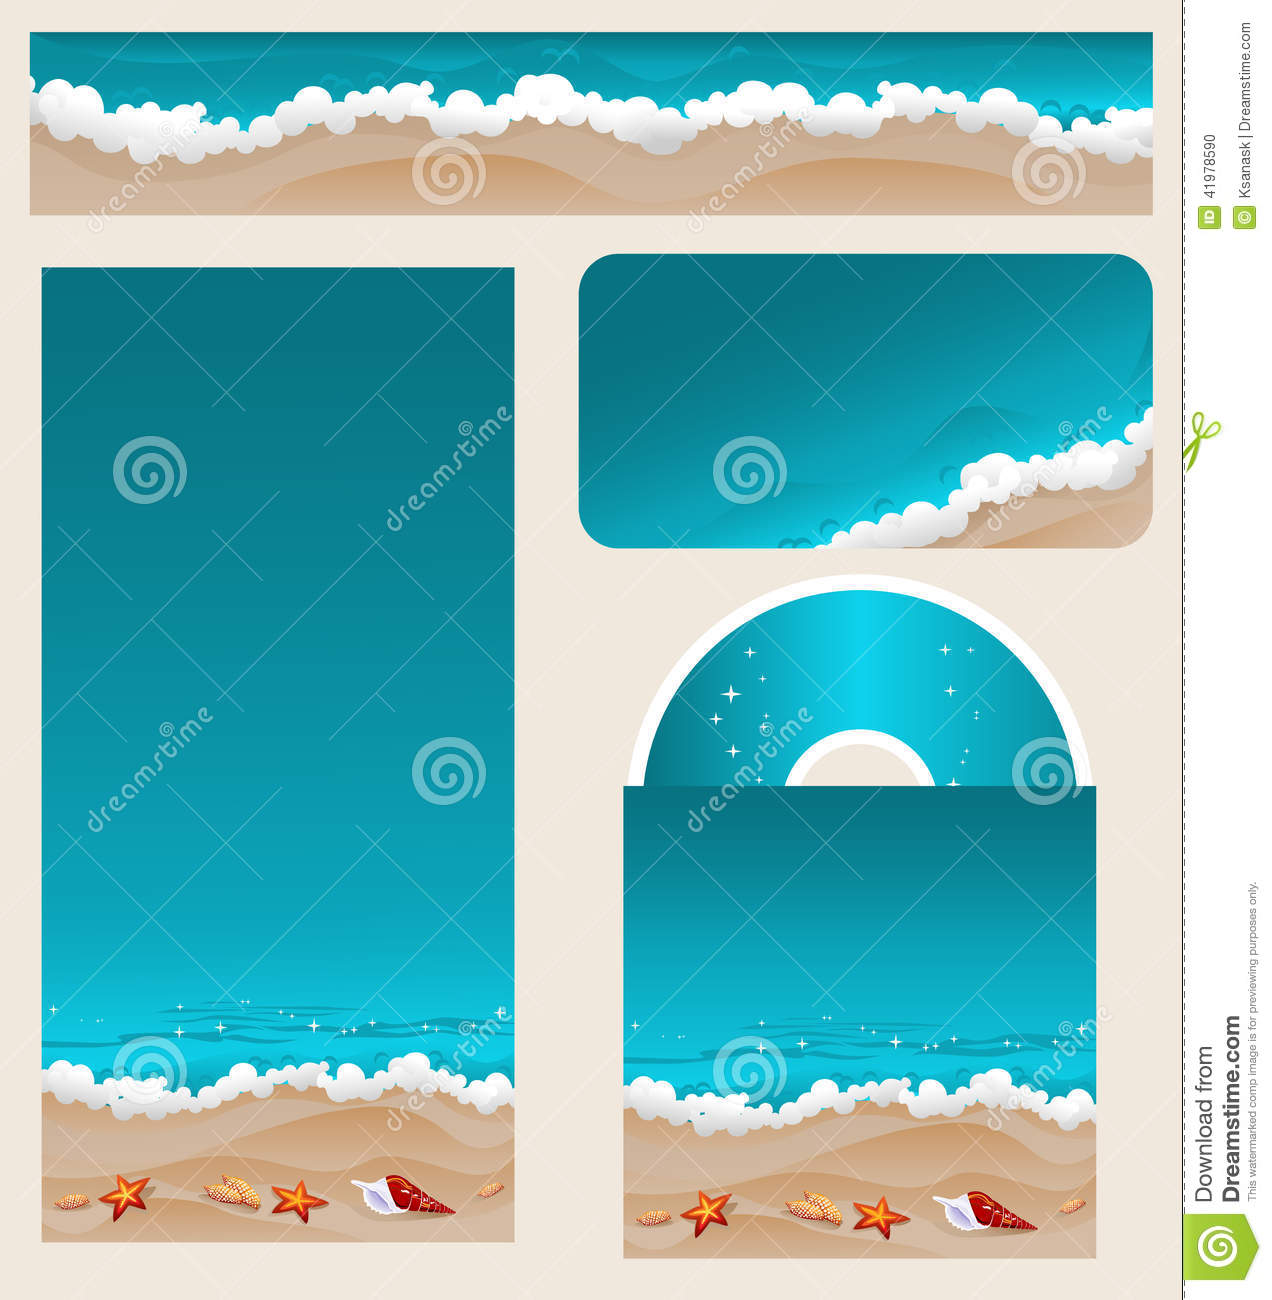 Beach Theme Card Stock: Branding Design Beach Theme Stock Vector